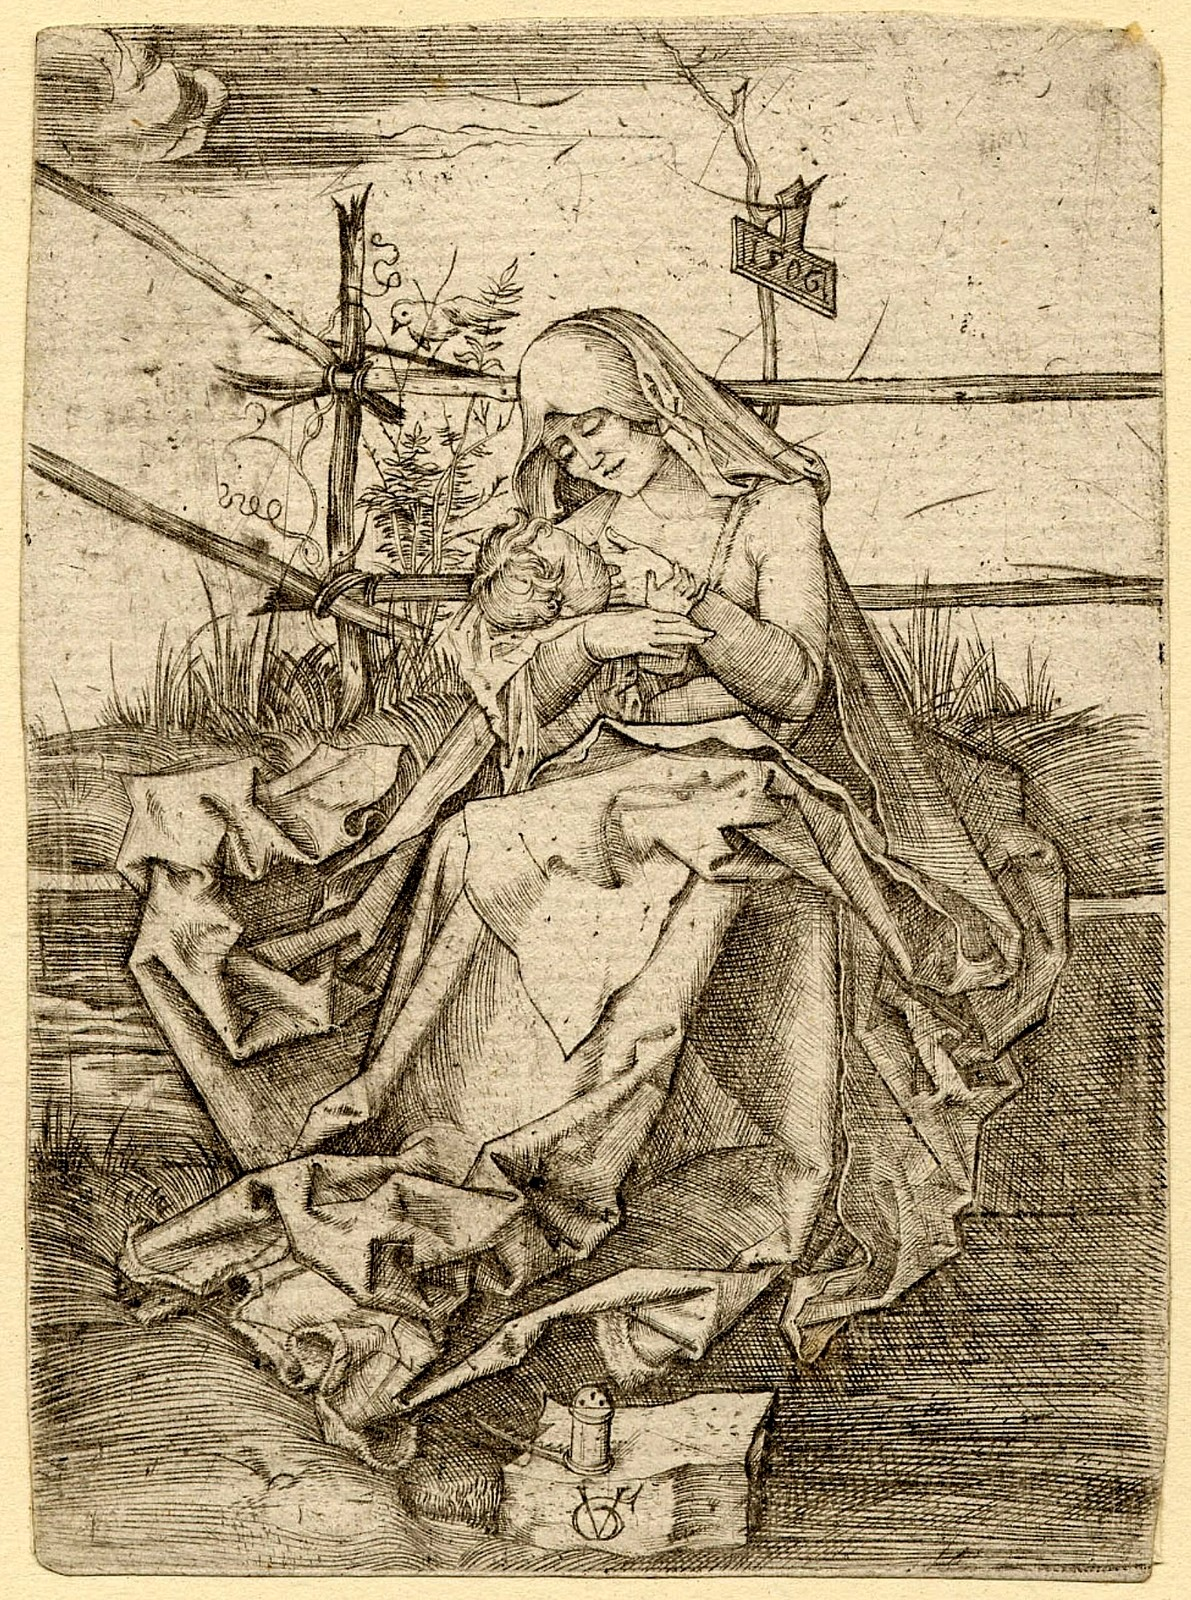 Мадонна с Младенцем, сидящая на скамье из дёрна (по А.Дюреру) (The Virgin and child seated on a grassy bank, after Albrecht Durer)_1506_10.8 х 80_резцовая гравюра.jpg